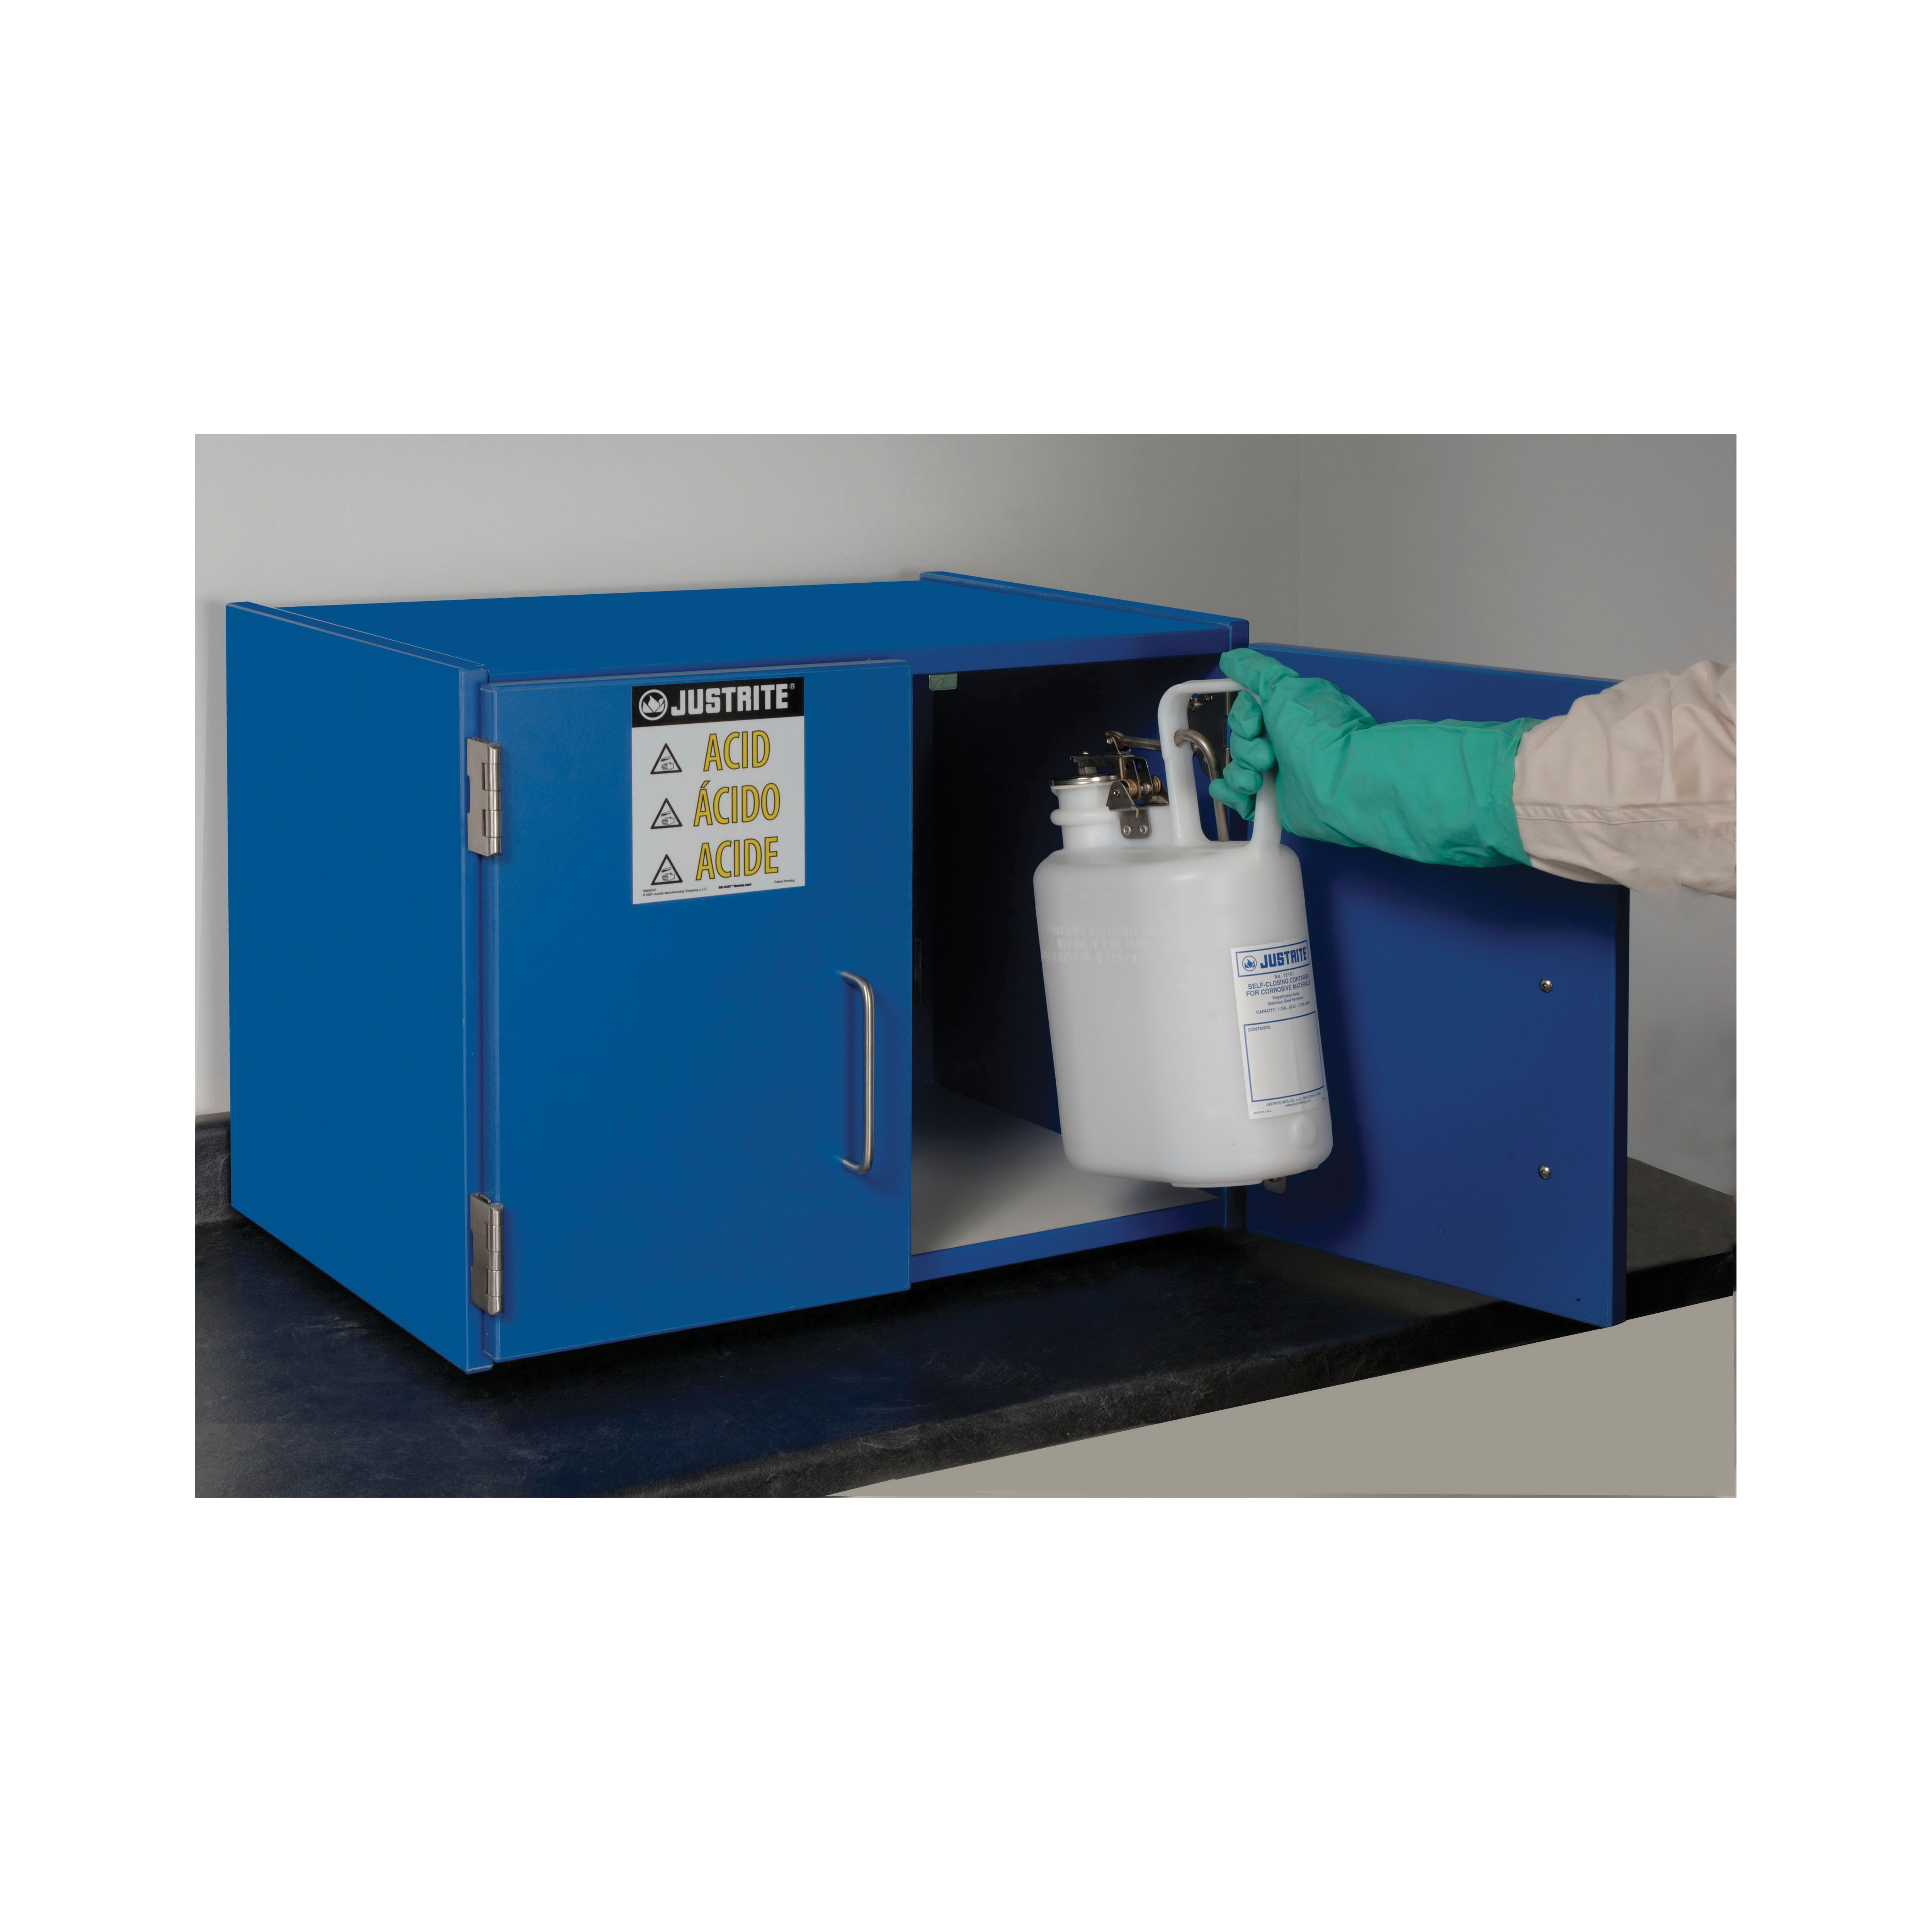 Justrite® 24120 Countertop Corrosive Safety Cabinet, (6) 2.5 L Bottle Capacity, 18-1/2 in H x 24 in W x 16 in D, Manual Close Door, 2 Doors, Wood Laminate, Blue